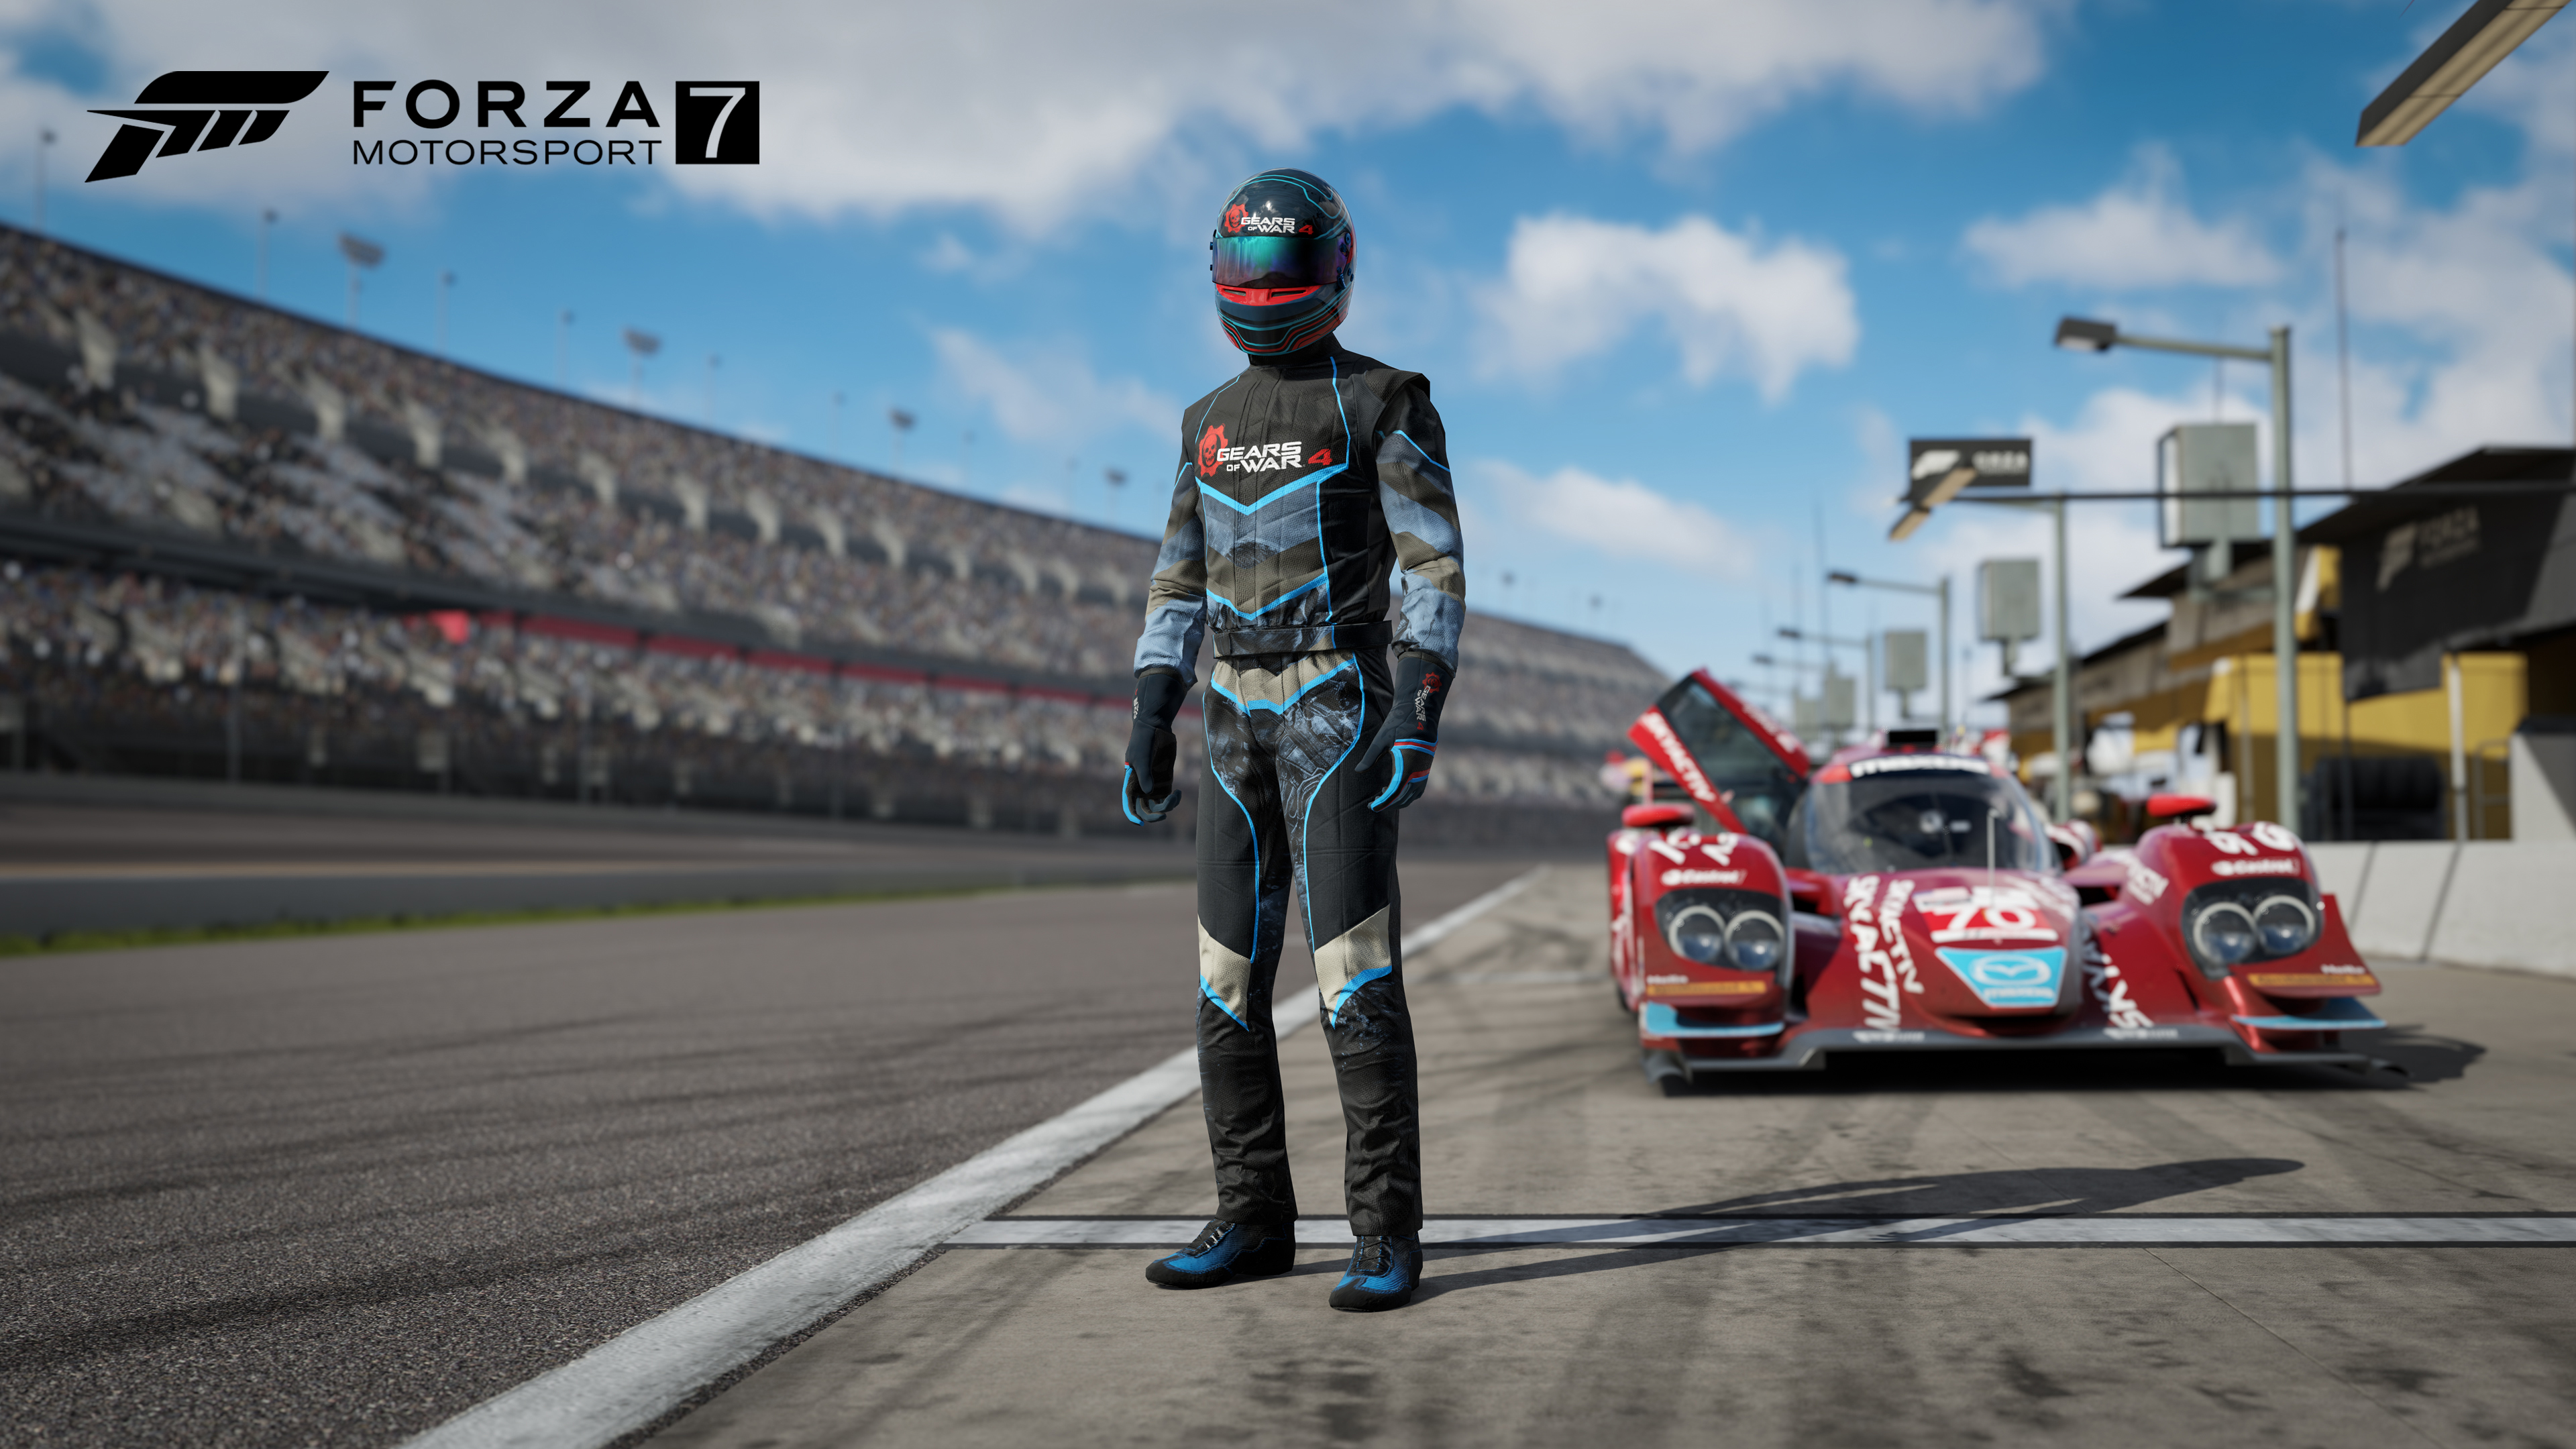 forza motorsport 7 racing suit inspired by gears of war 4 is rolling out now mspoweruser. Black Bedroom Furniture Sets. Home Design Ideas